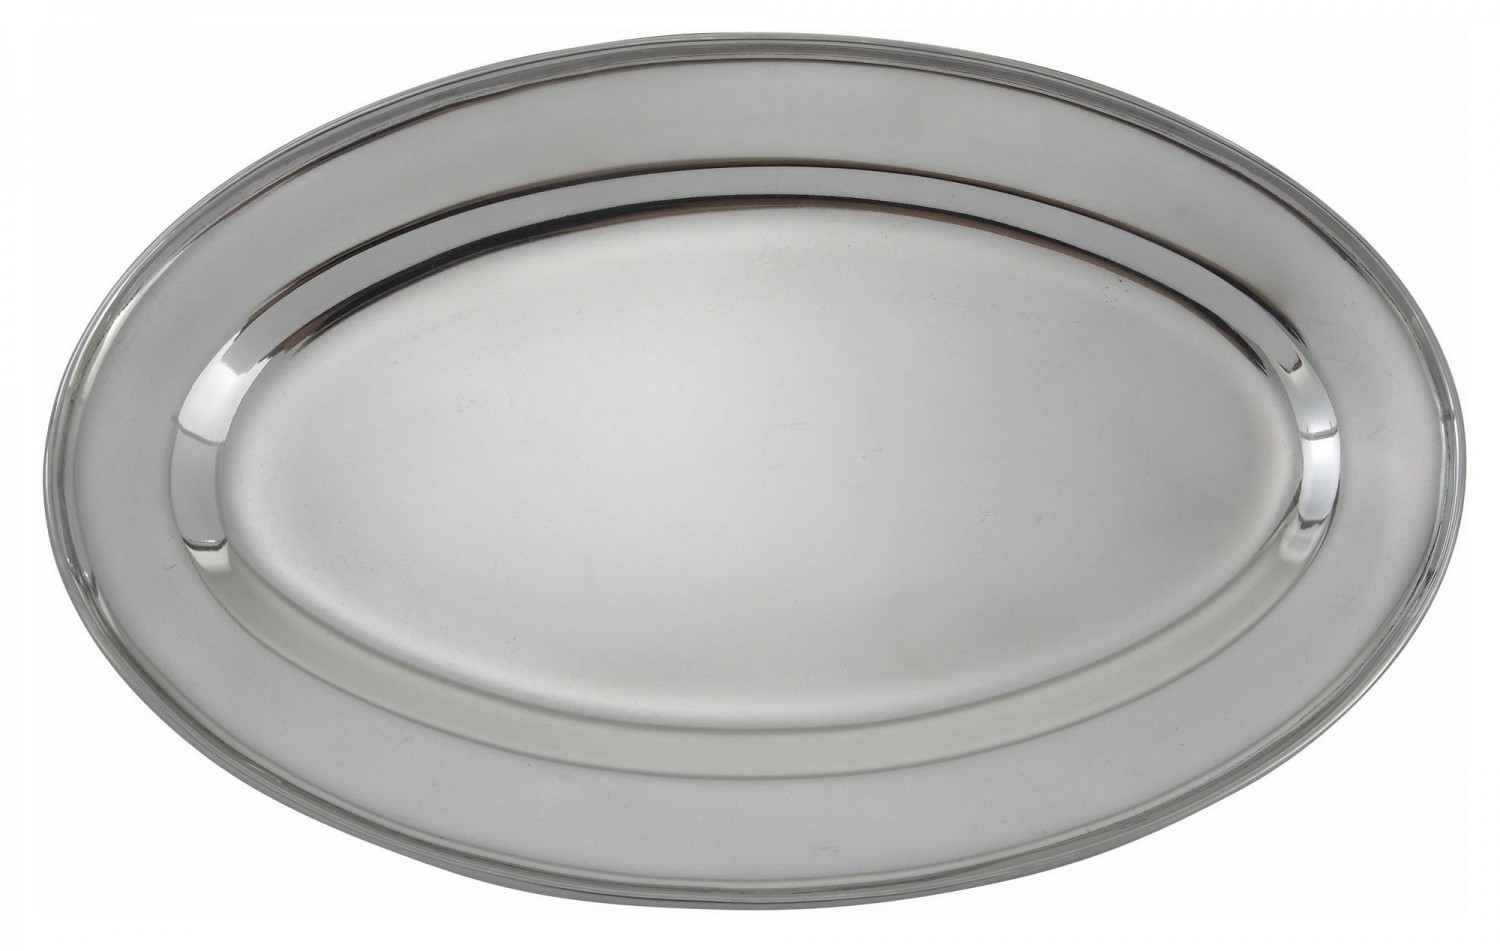 "Winco OPL-12 Oval Stainless Steel Platter 11-3/4"" x 7-7/8"""